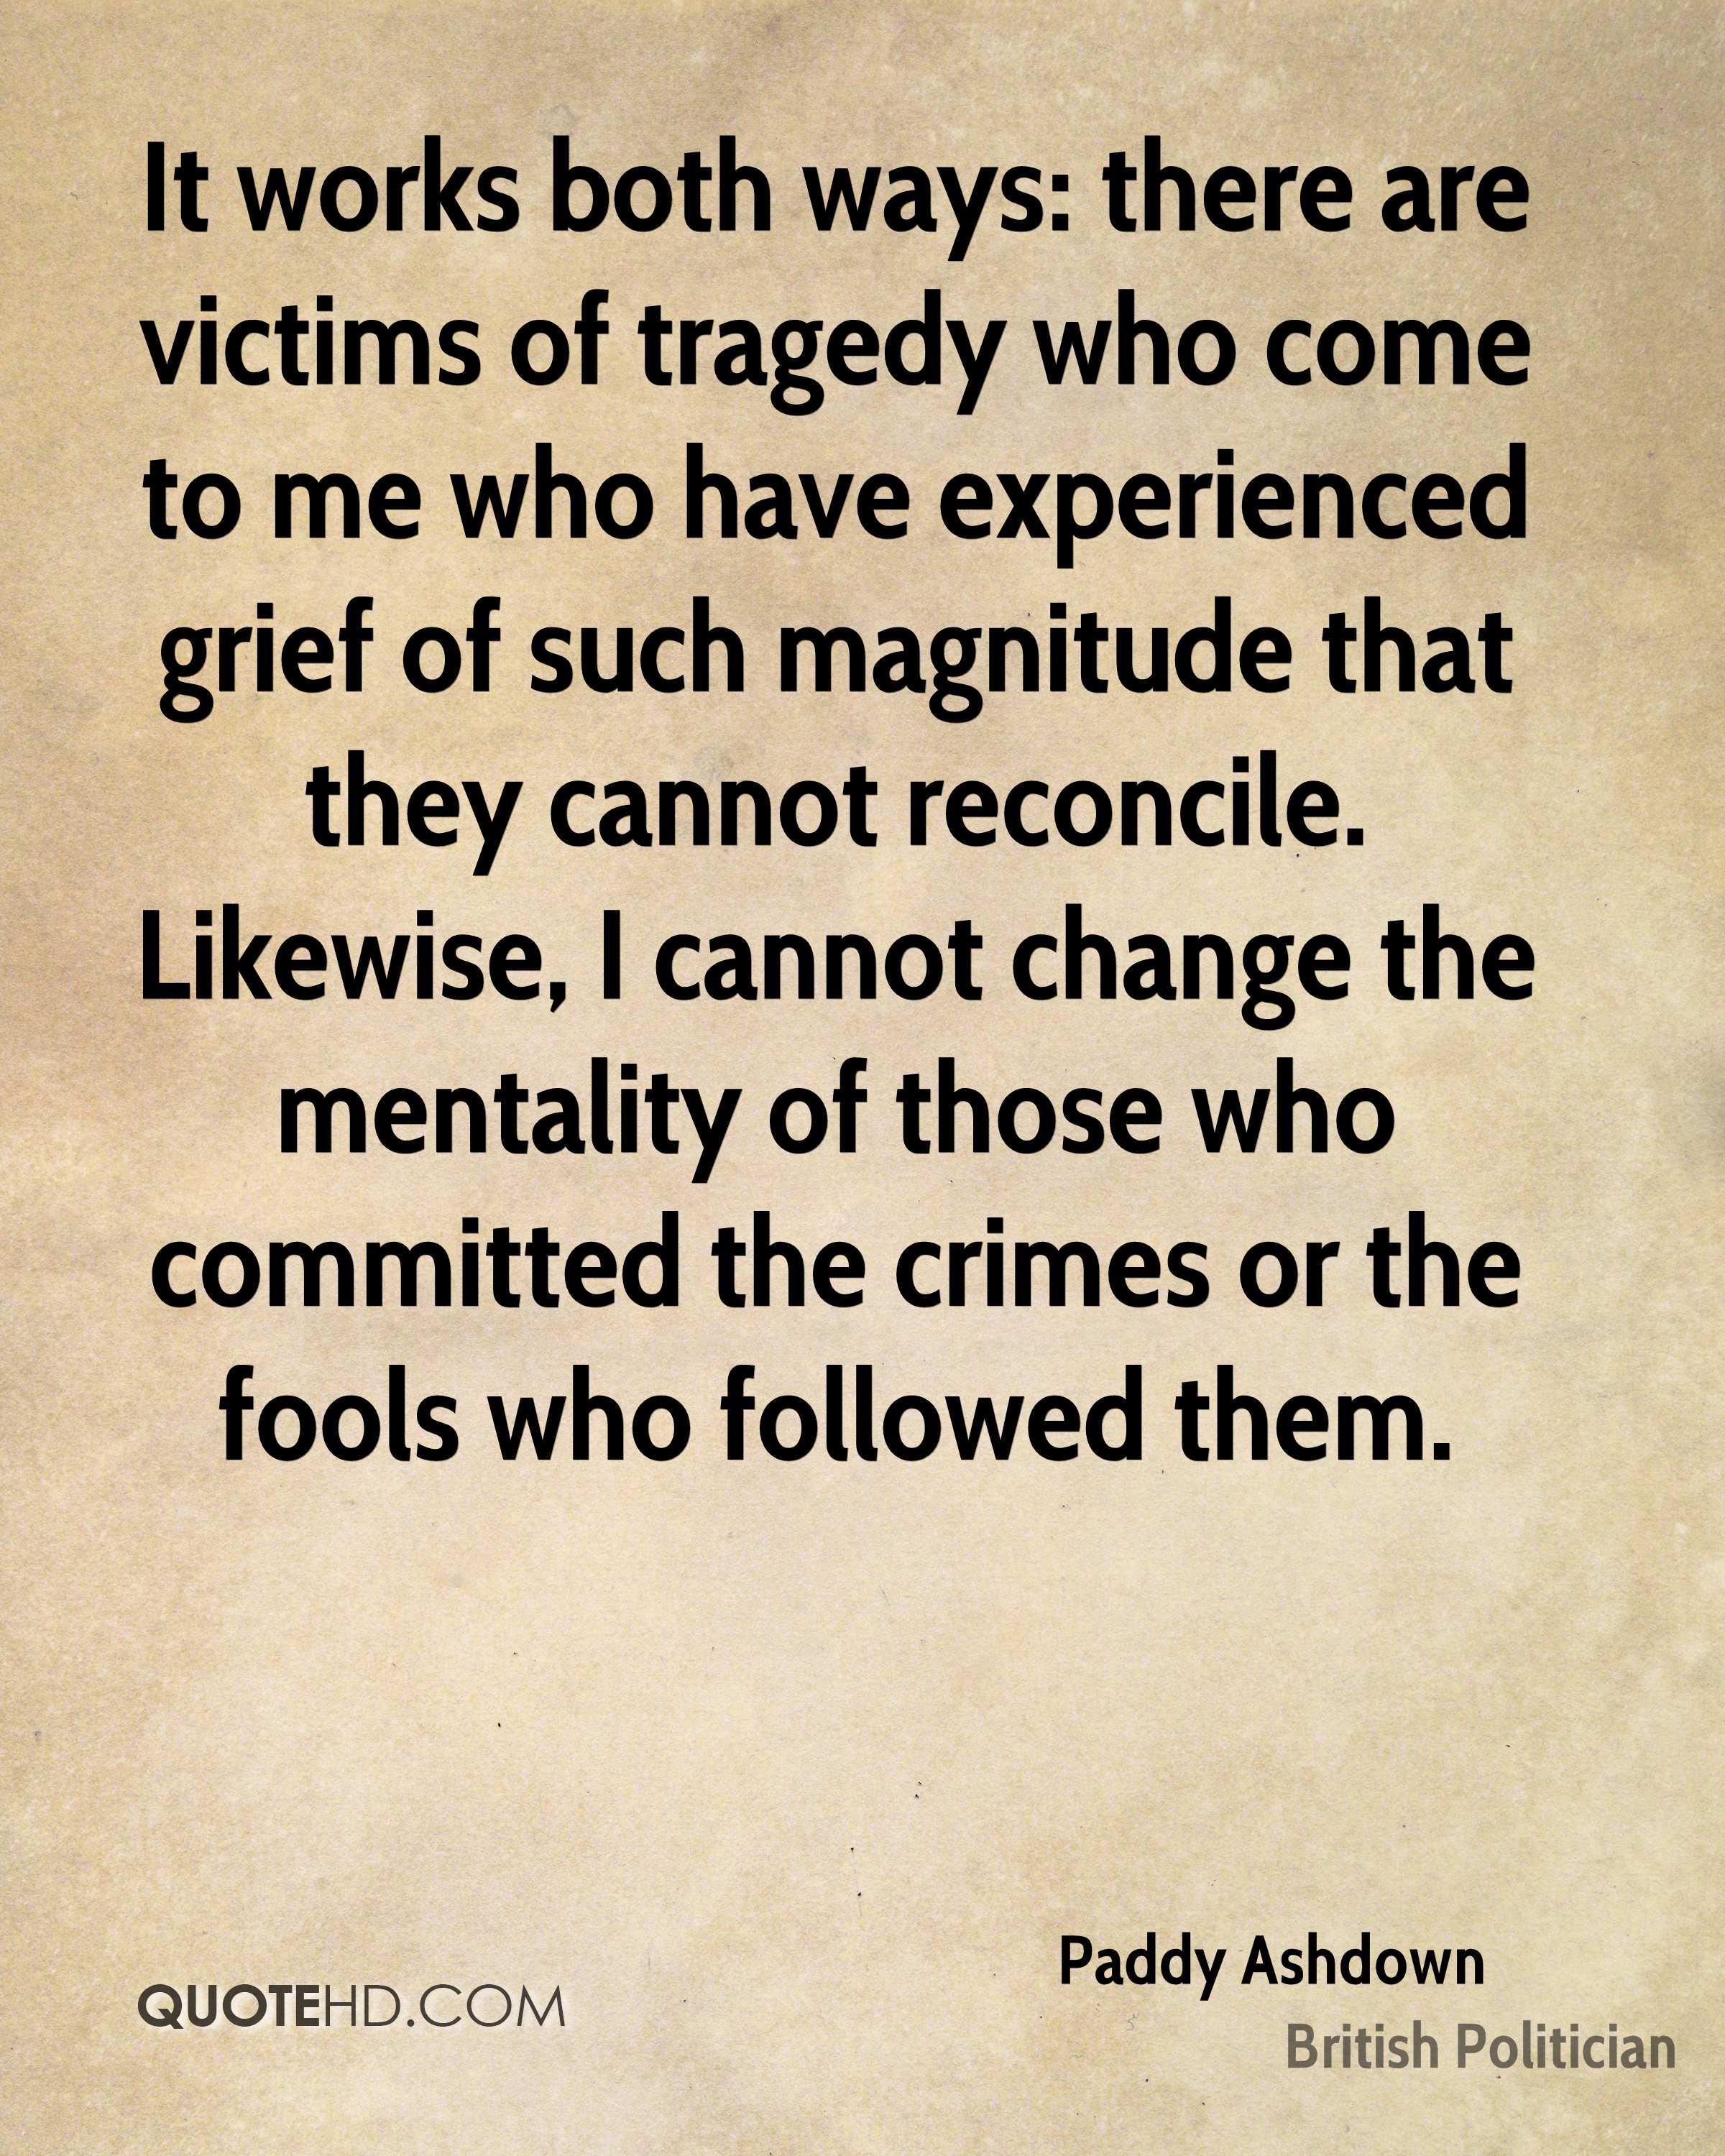 It works both ways: there are victims of tragedy who come to me who have experienced grief of such magnitude that they cannot reconcile. Likewise, I cannot change the mentality of those who committed the crimes or the fools who followed them.